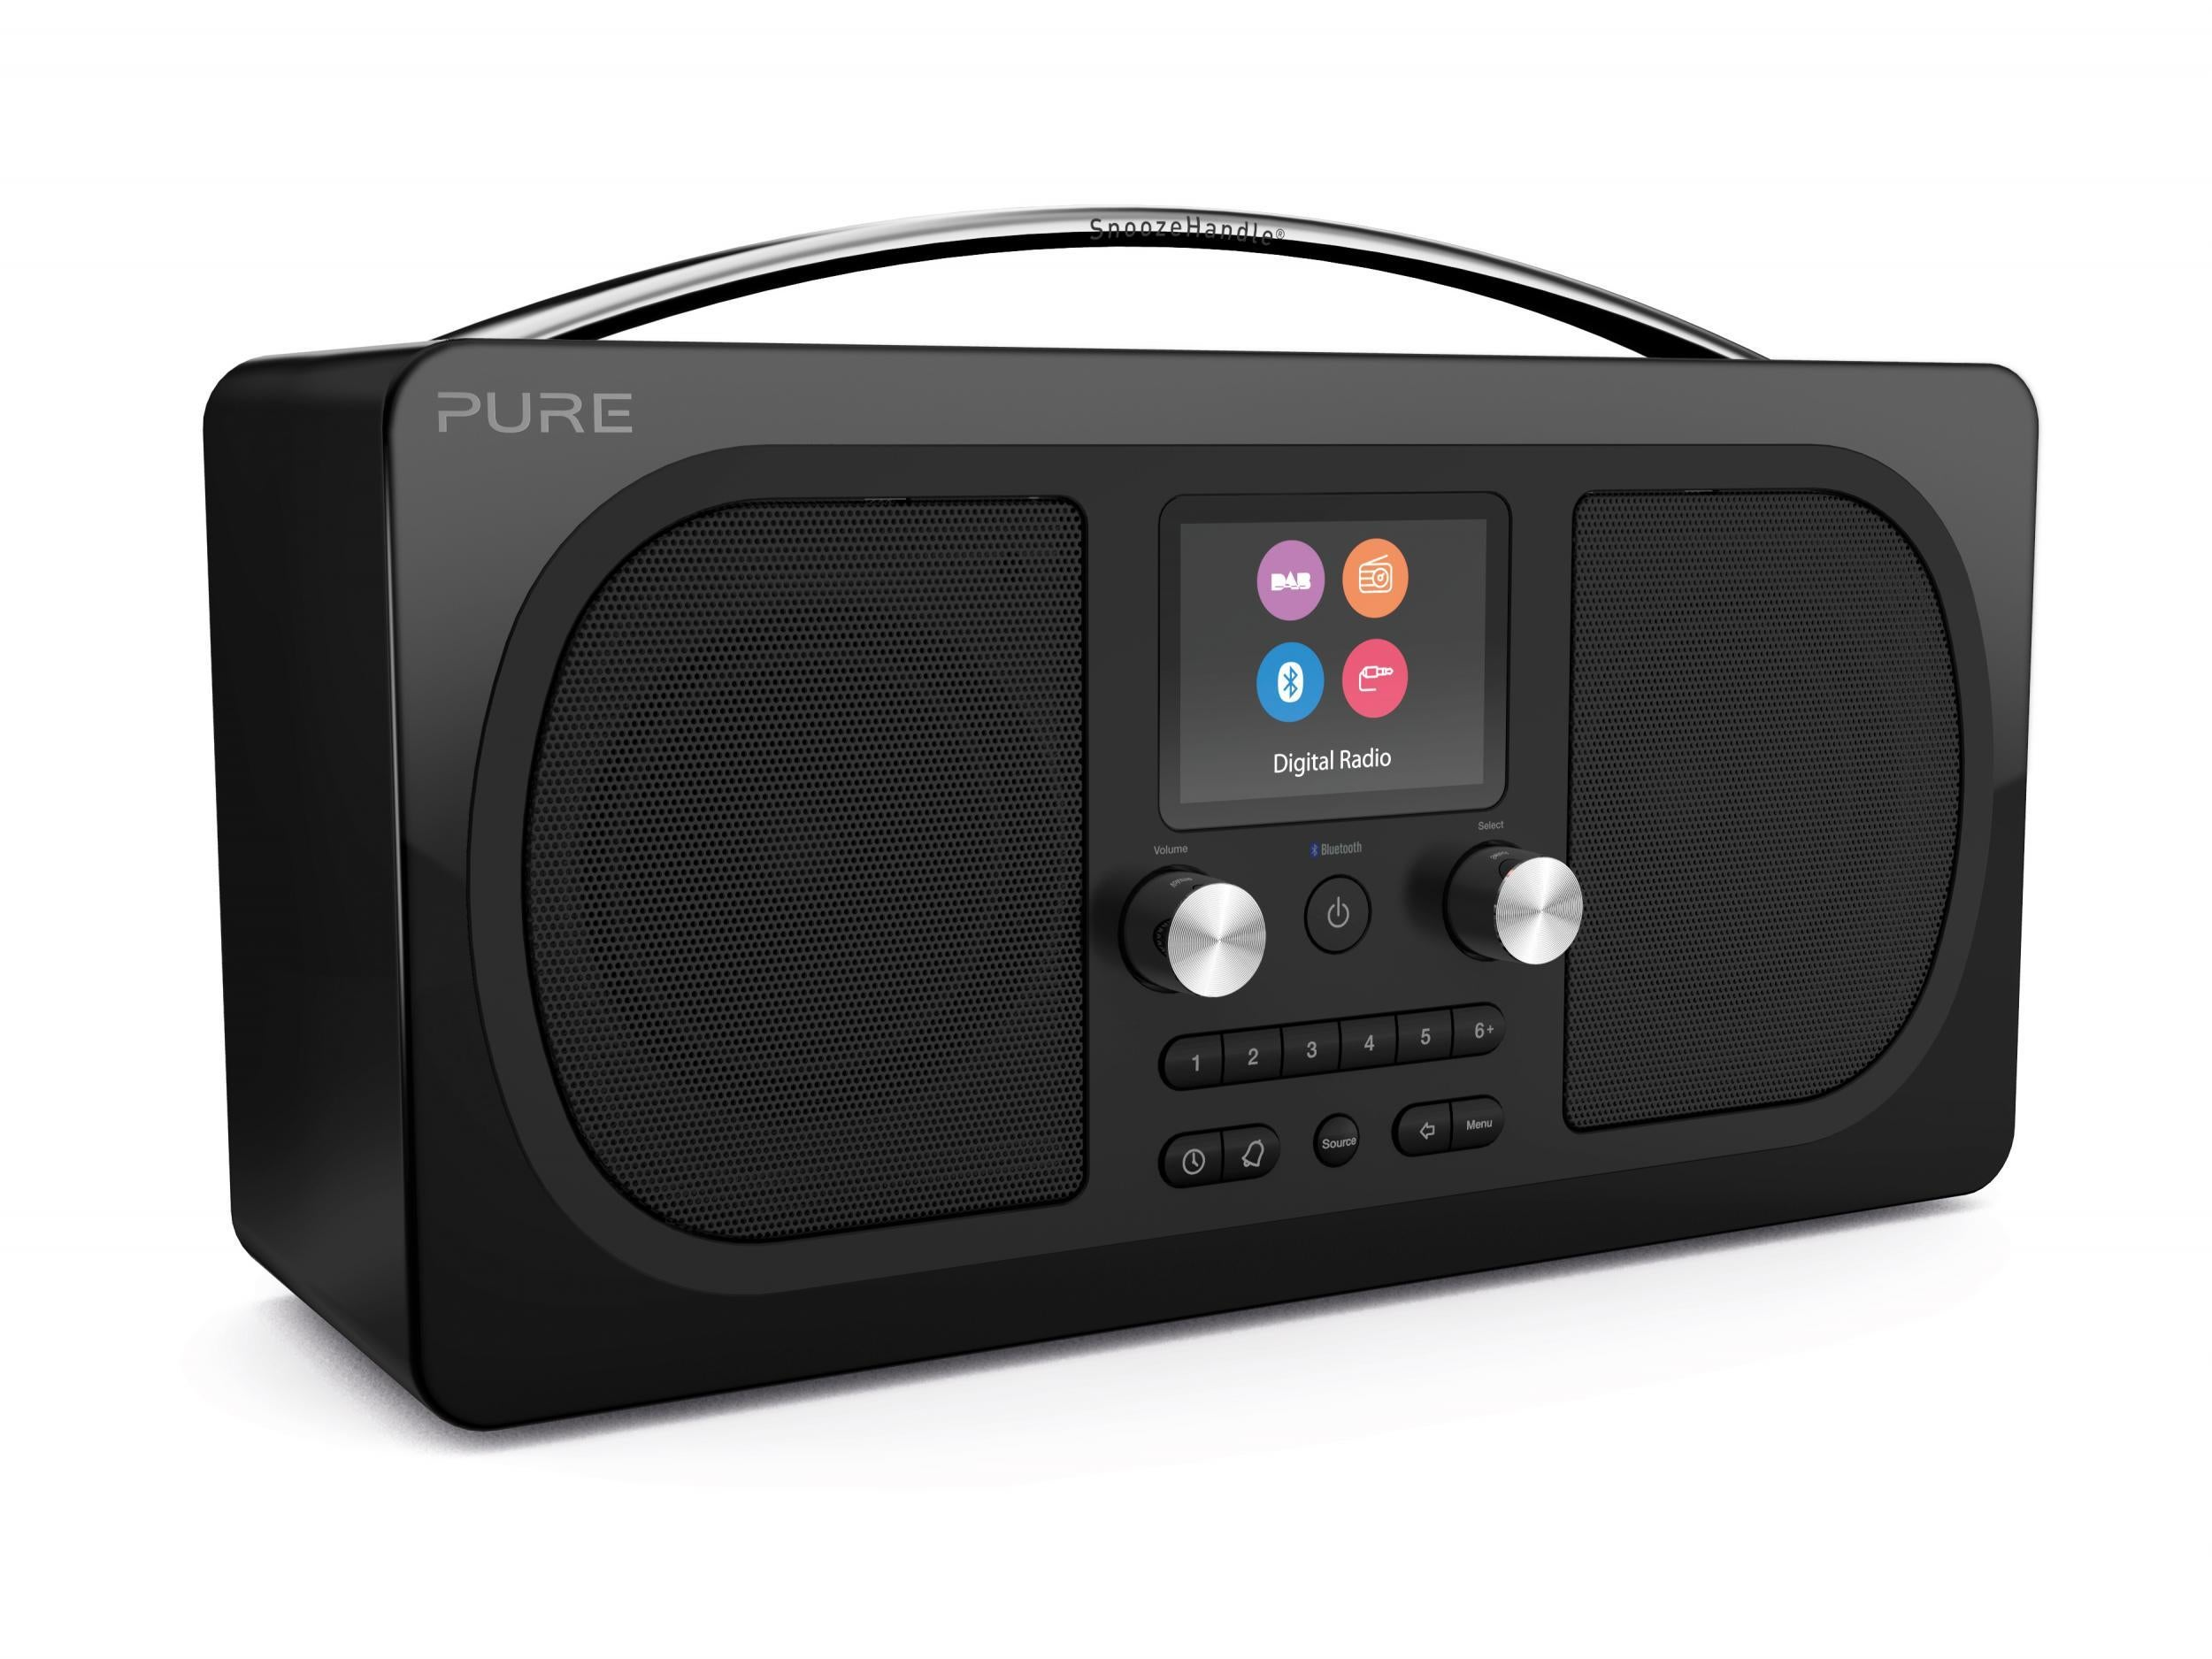 10 best dab radios the independent rh independent co uk Roberts Radio USA roberts radio stream93i user manual